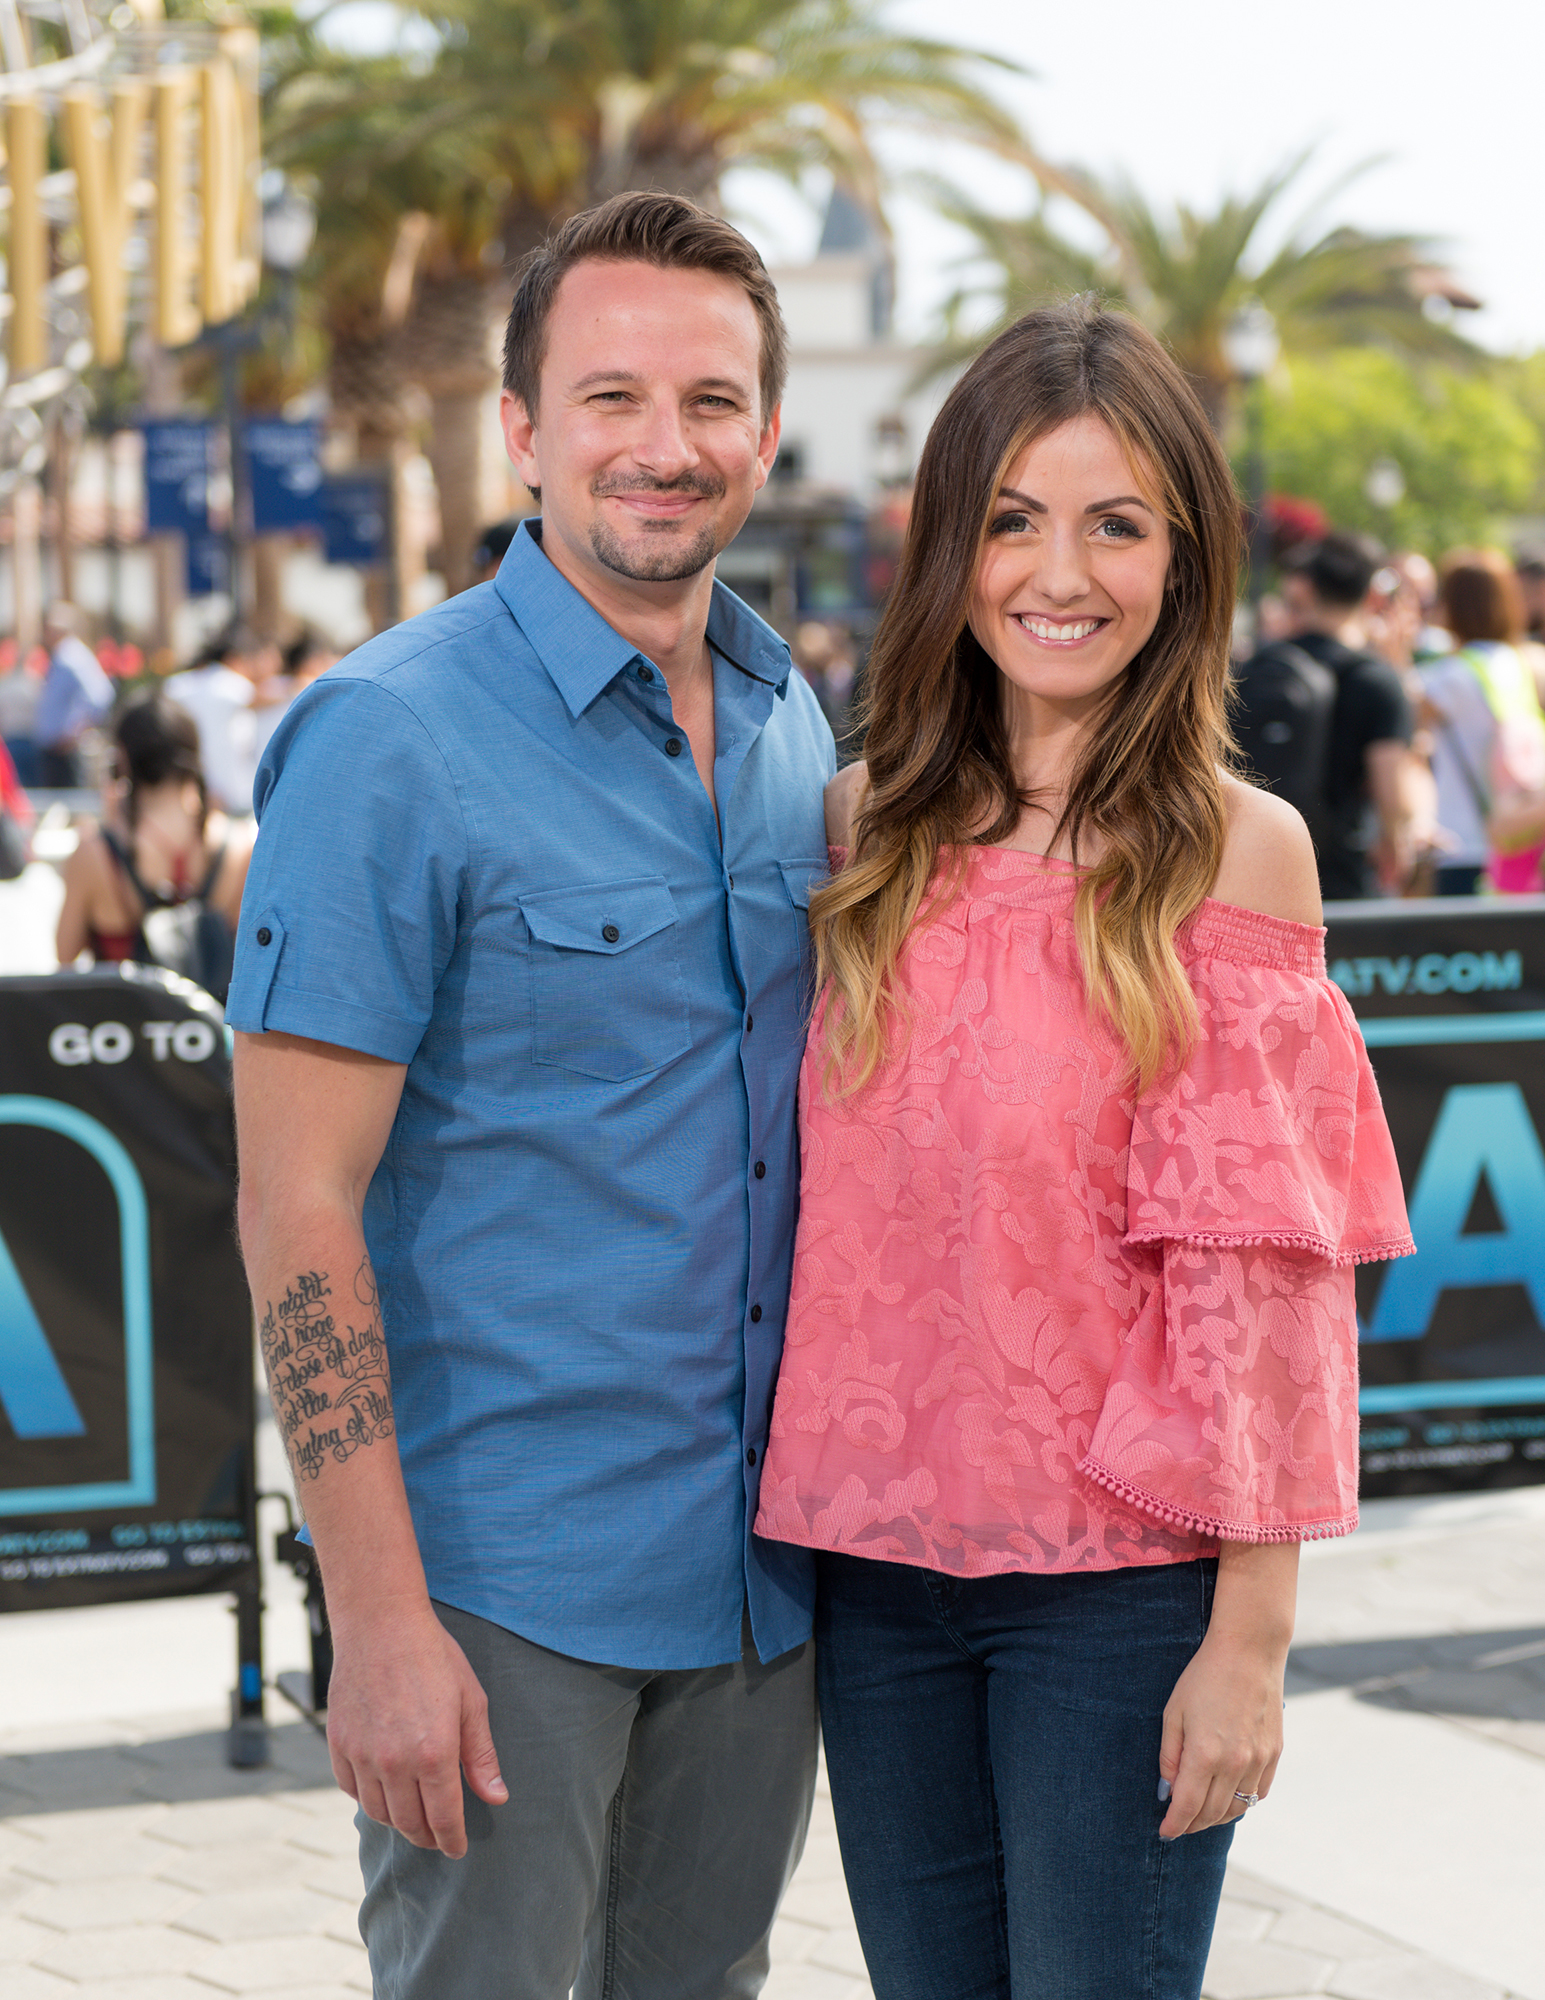 Every Bachelor Nation Couple That Has Tied the Knot - After falling in love on Bachelor in Paradise season 3, the couple married in June 2017 and welcomed their first child together, daughter Bella, in February 2018.